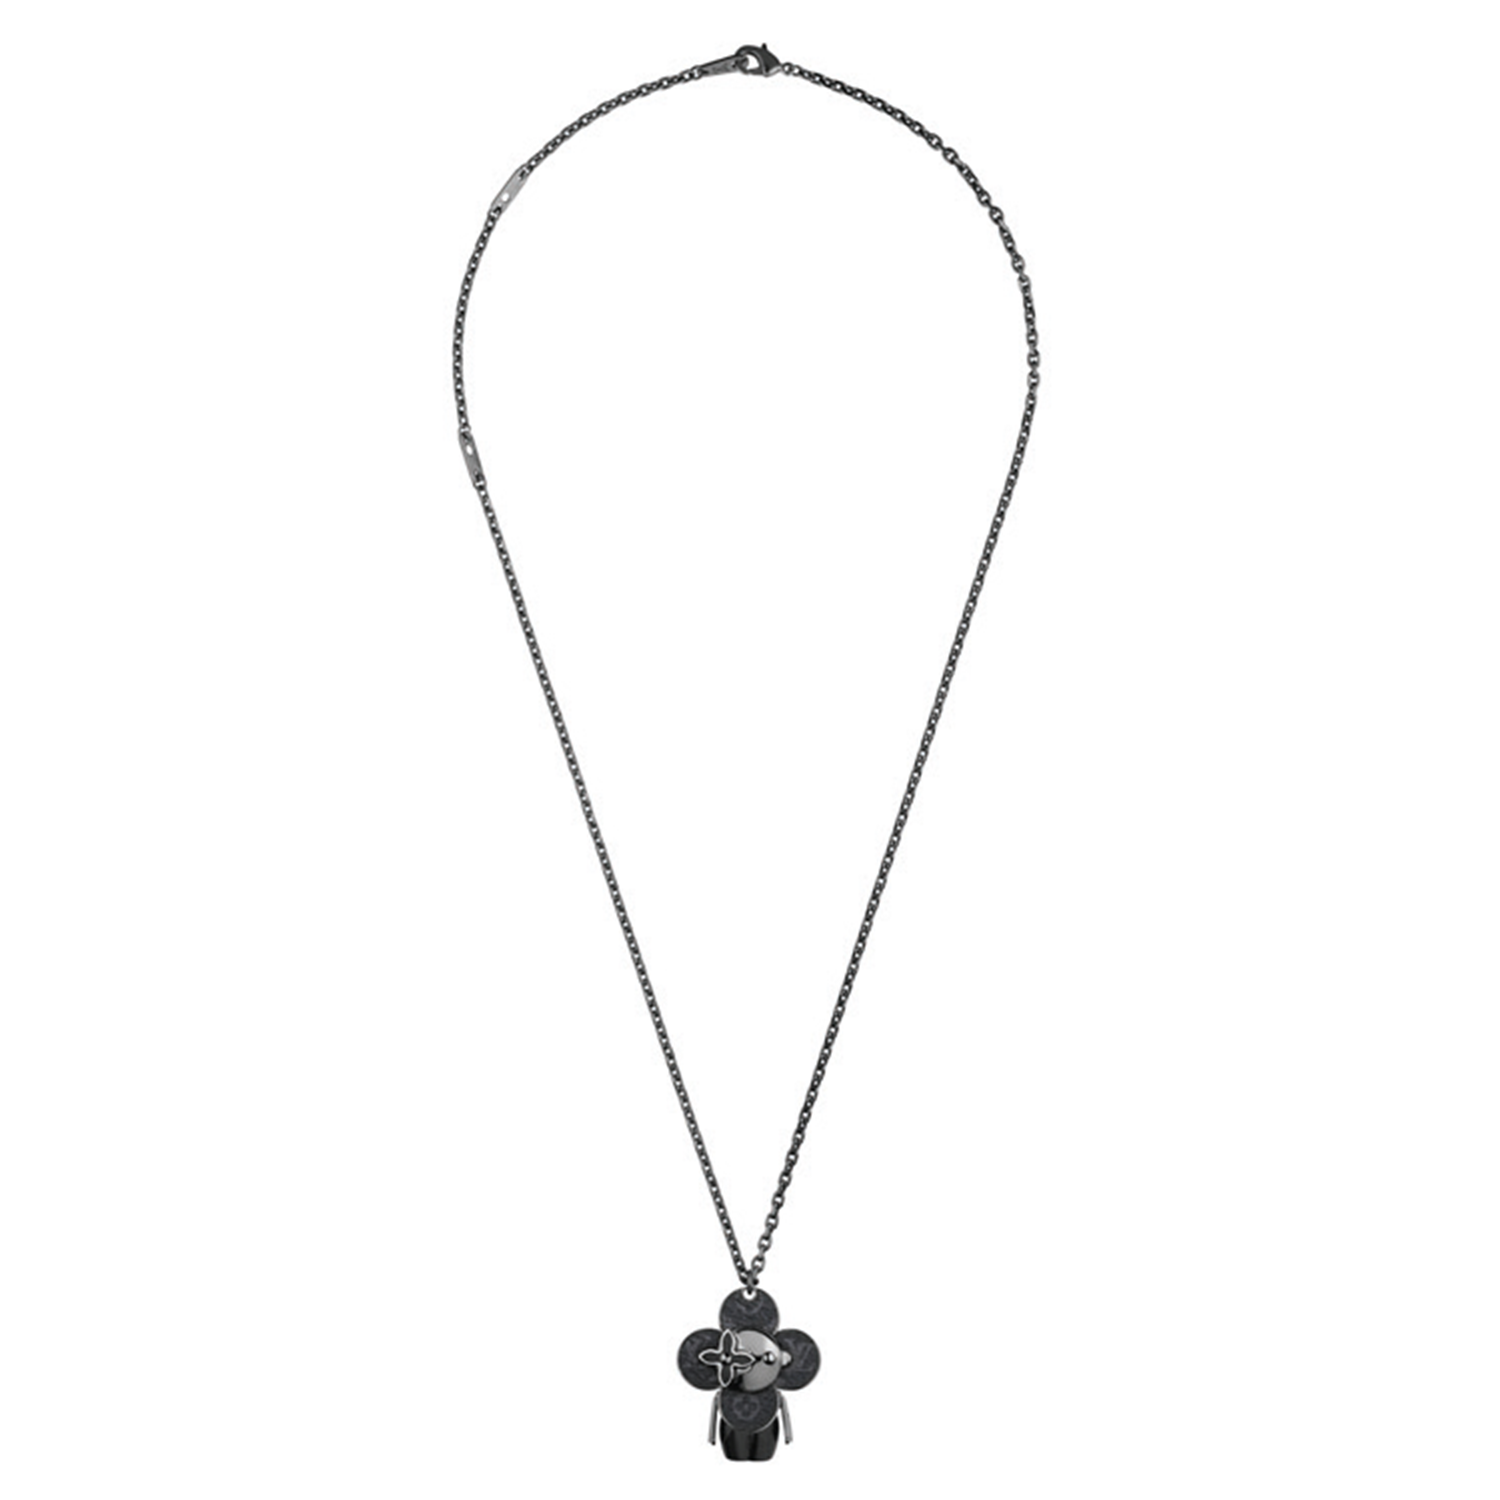 VIVIENNE NECKLACE - €450 $660M62681RUTHENIUM